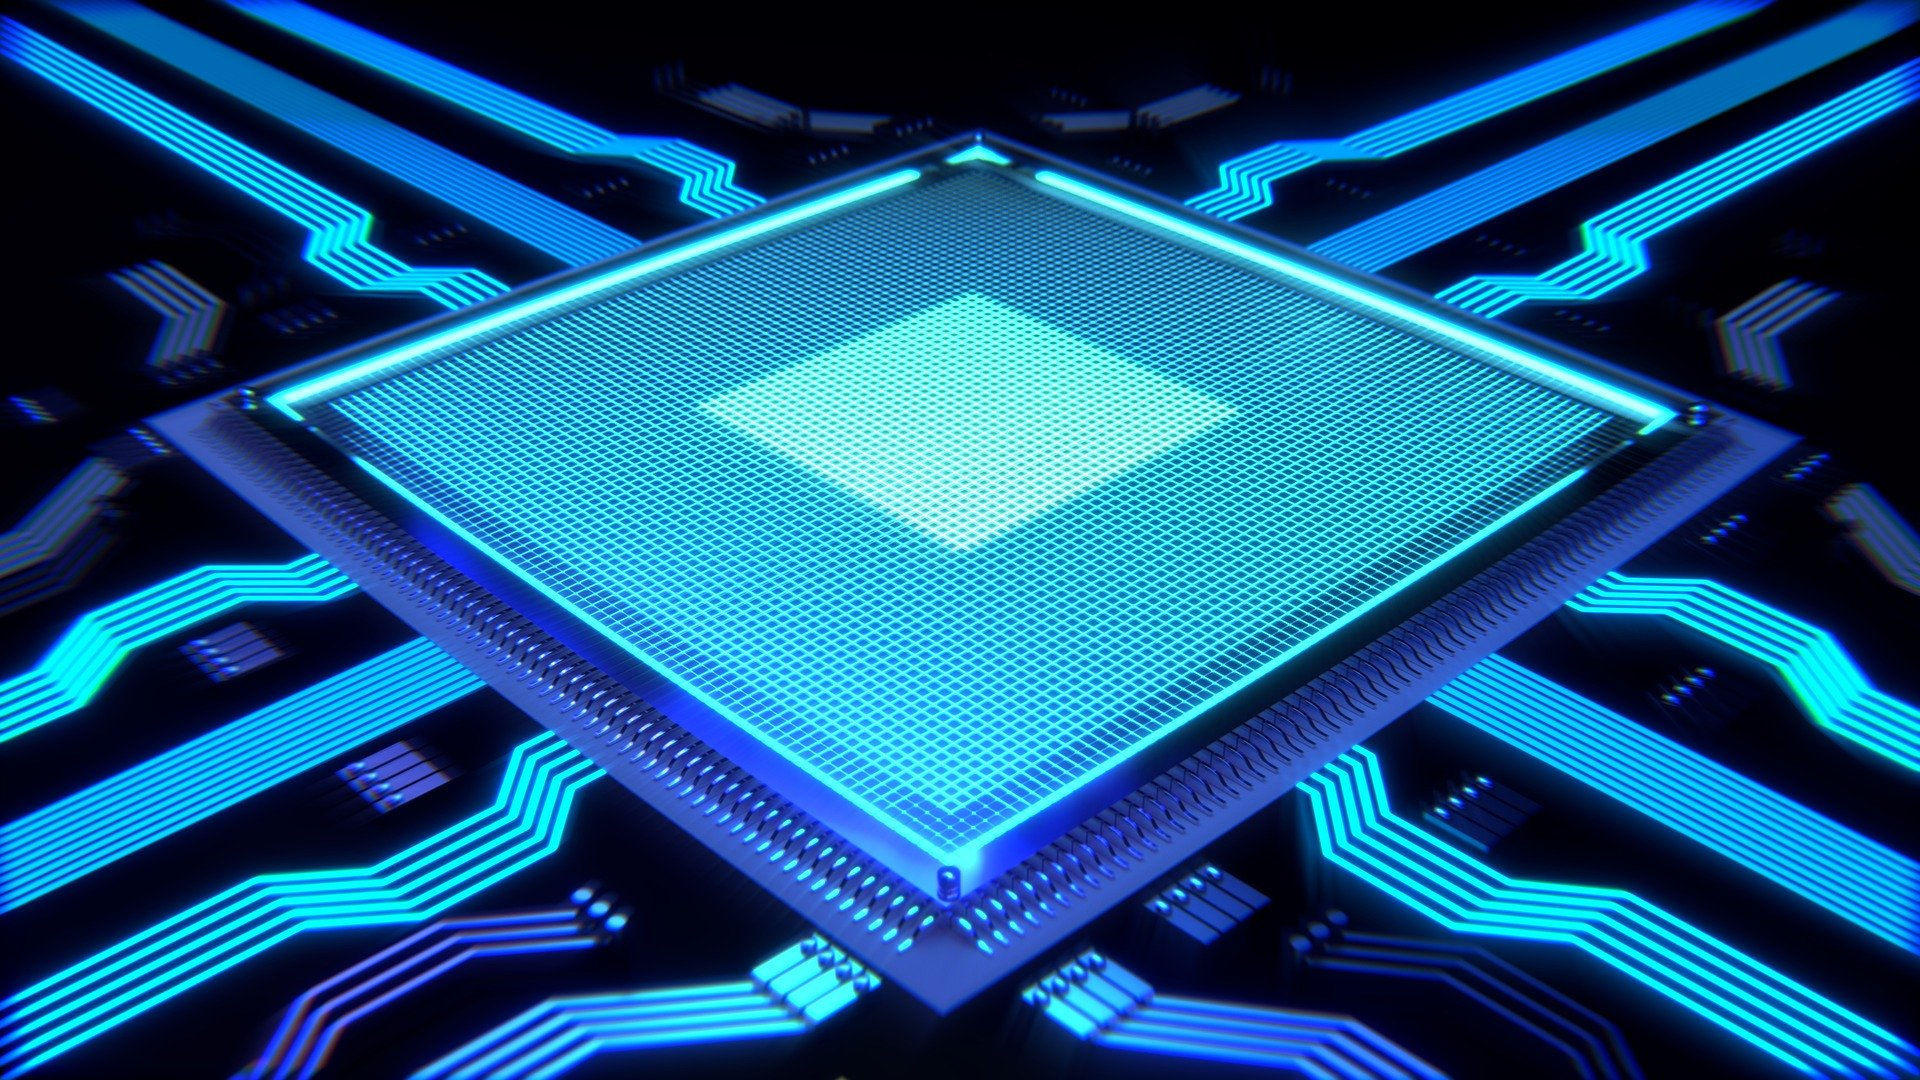 Meet this chip startup powering China's AI ambitions